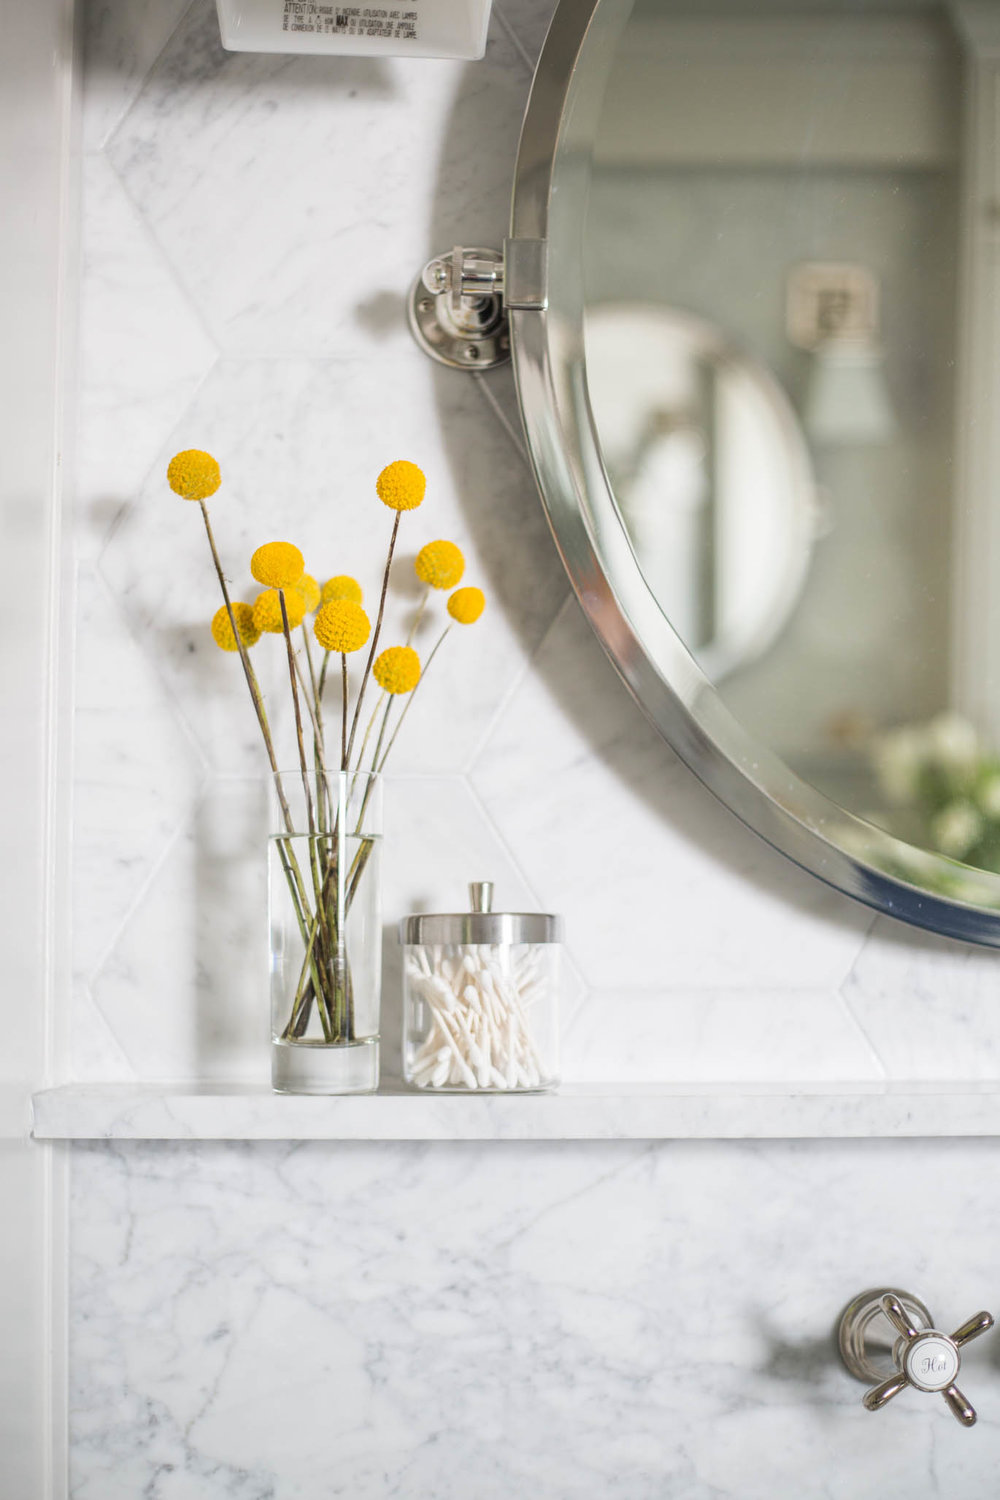 Luxury Special details create that boutique hotel bathroom experience